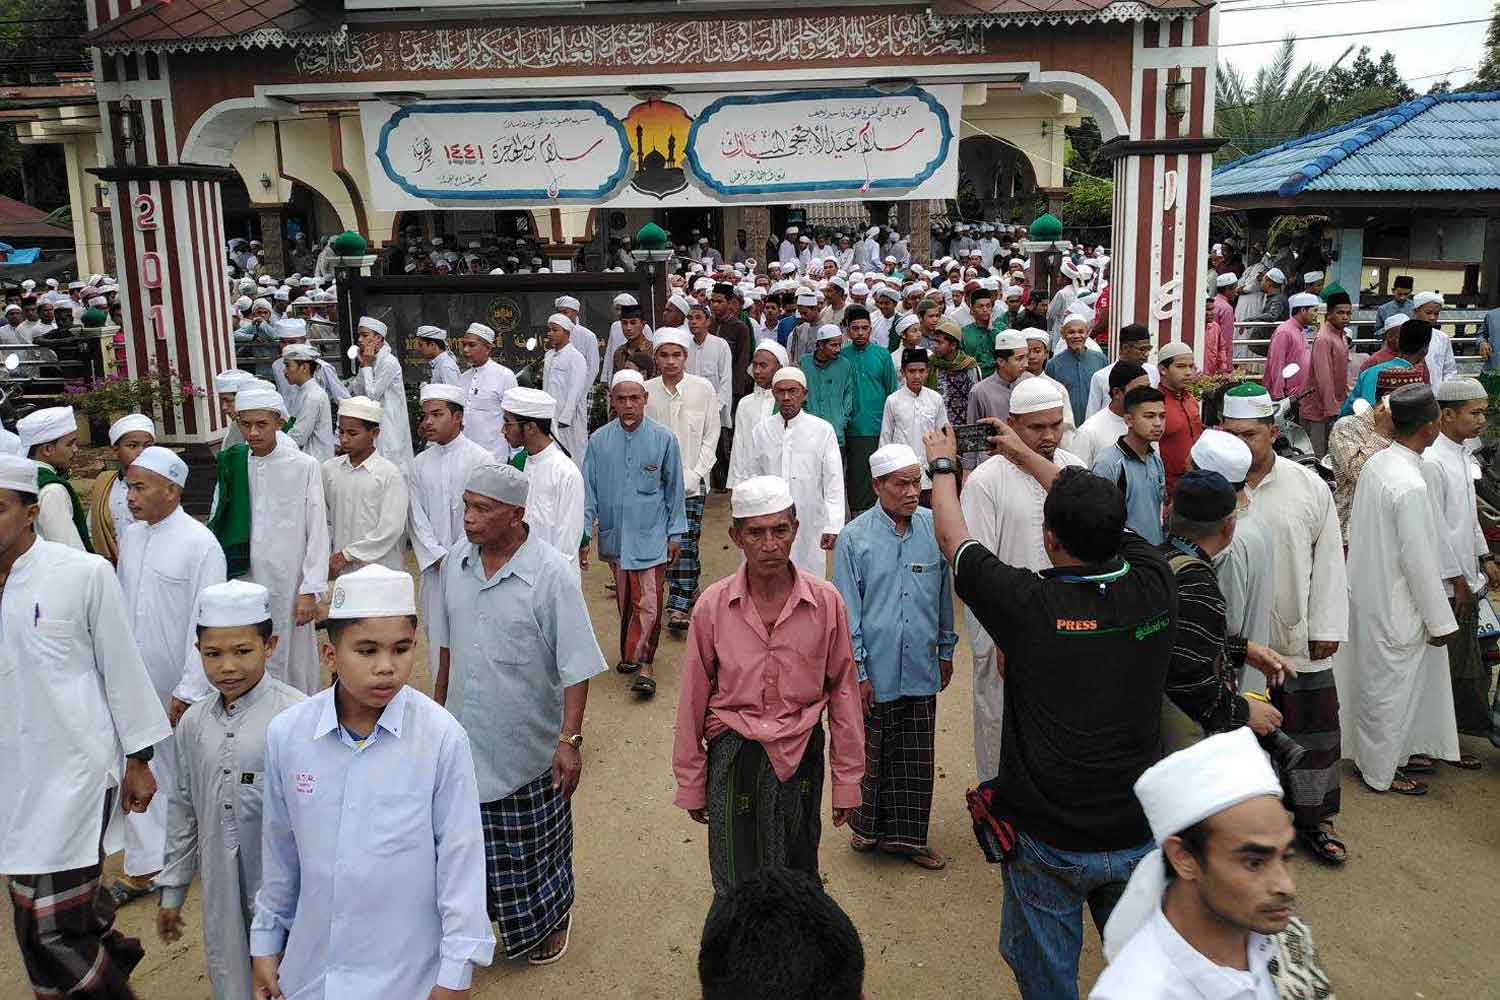 A large crowd of Muslims attends the funeral of insurgent suspect Abdulloh Esomusor at Miftahul Jannah mosque in Sai Buri district, Pattani, on Monday. (Photo by Abdullah Benjakat)